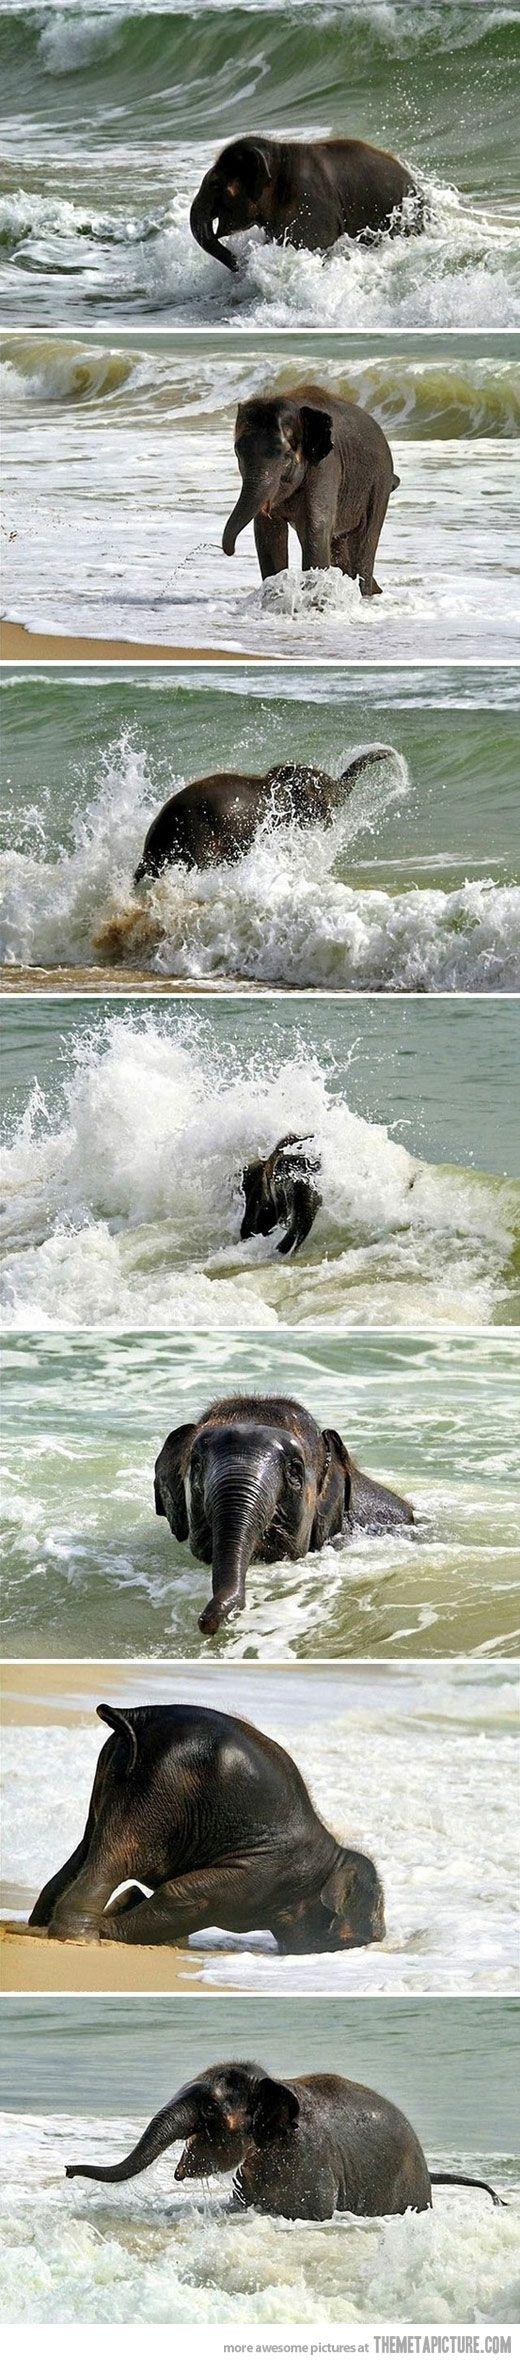 Next time he's going surfing